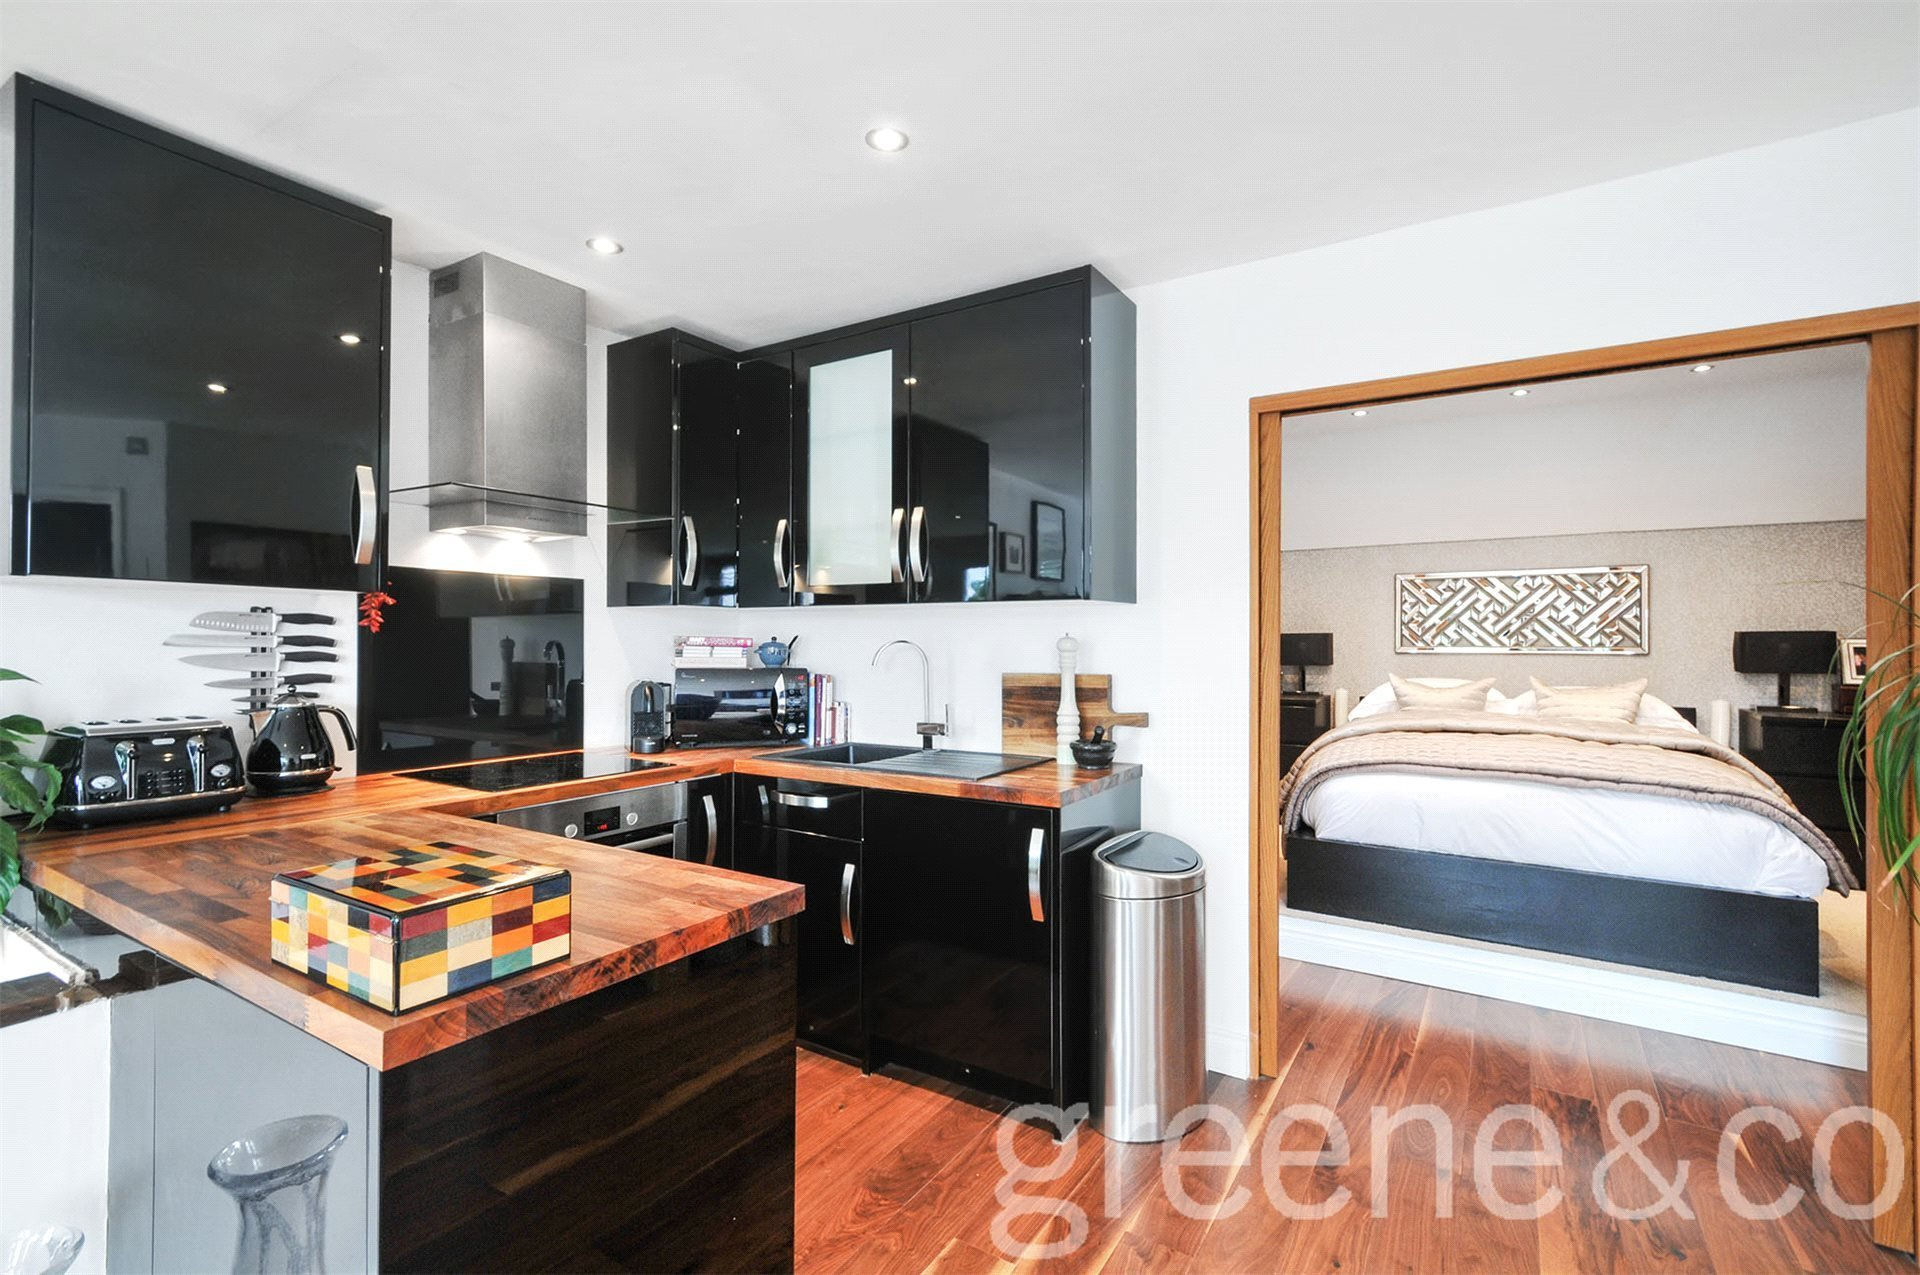 Best 1 Bedroom Apartment For Sale In Marylands Road Maida Vale With Pictures Original 1024 x 768